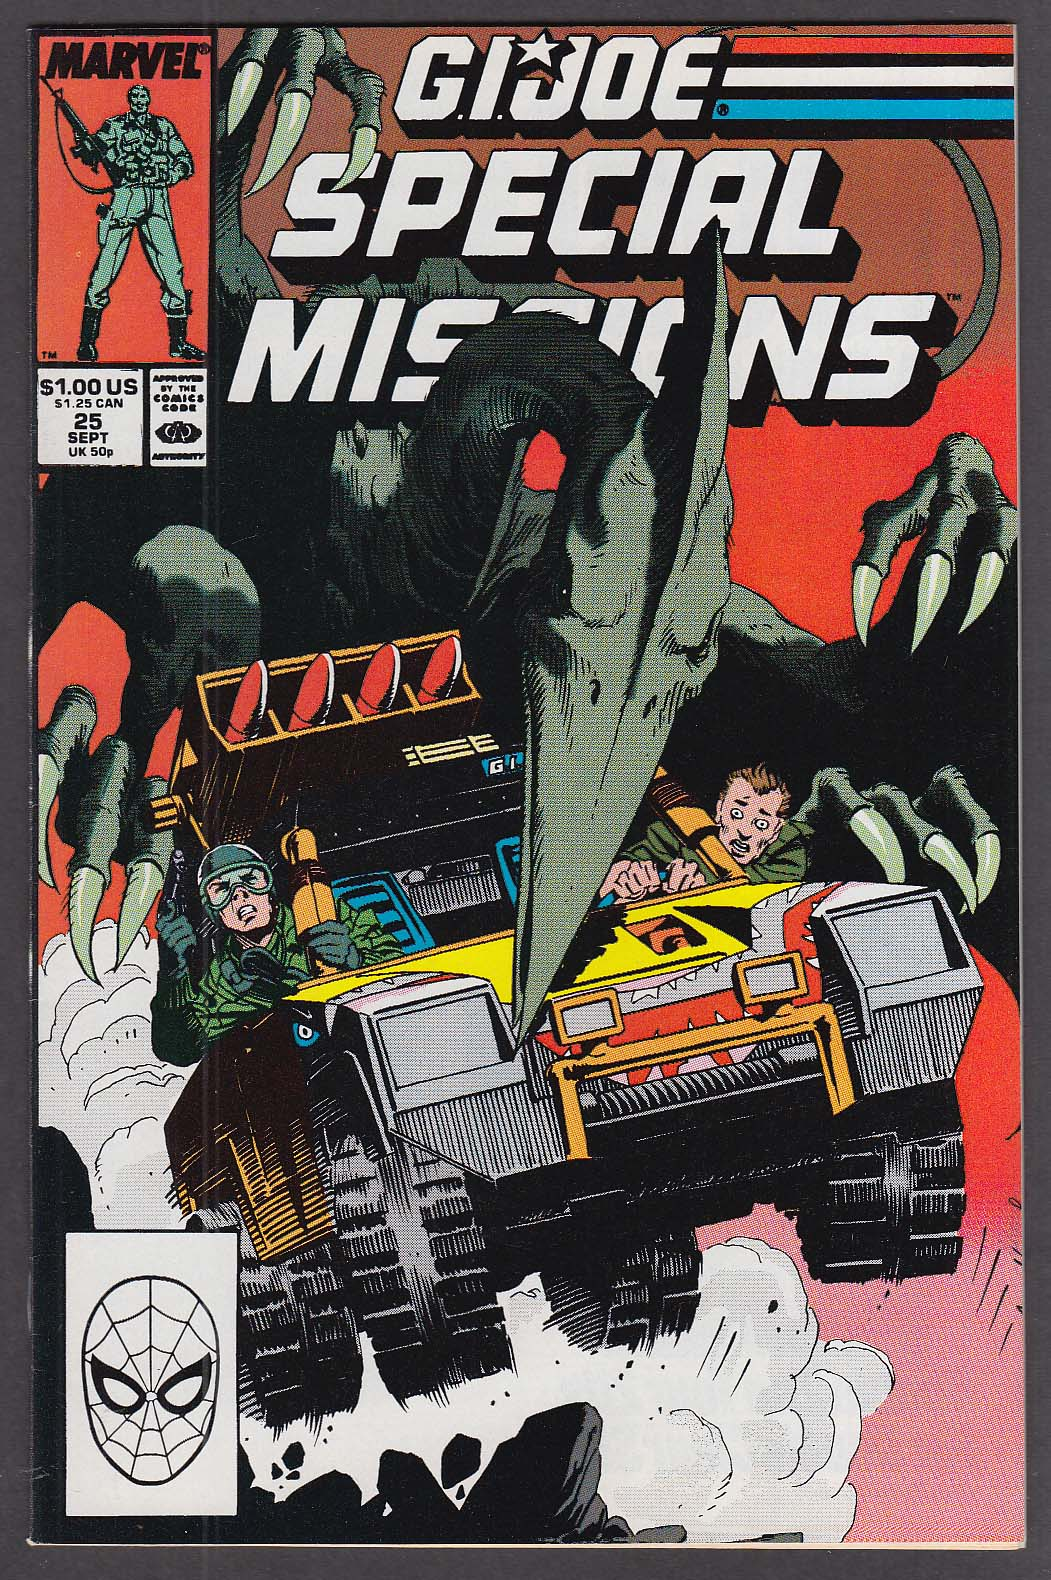 GI JOE SPECIAL MISSIONS #25 Marvel comic book 9 1989